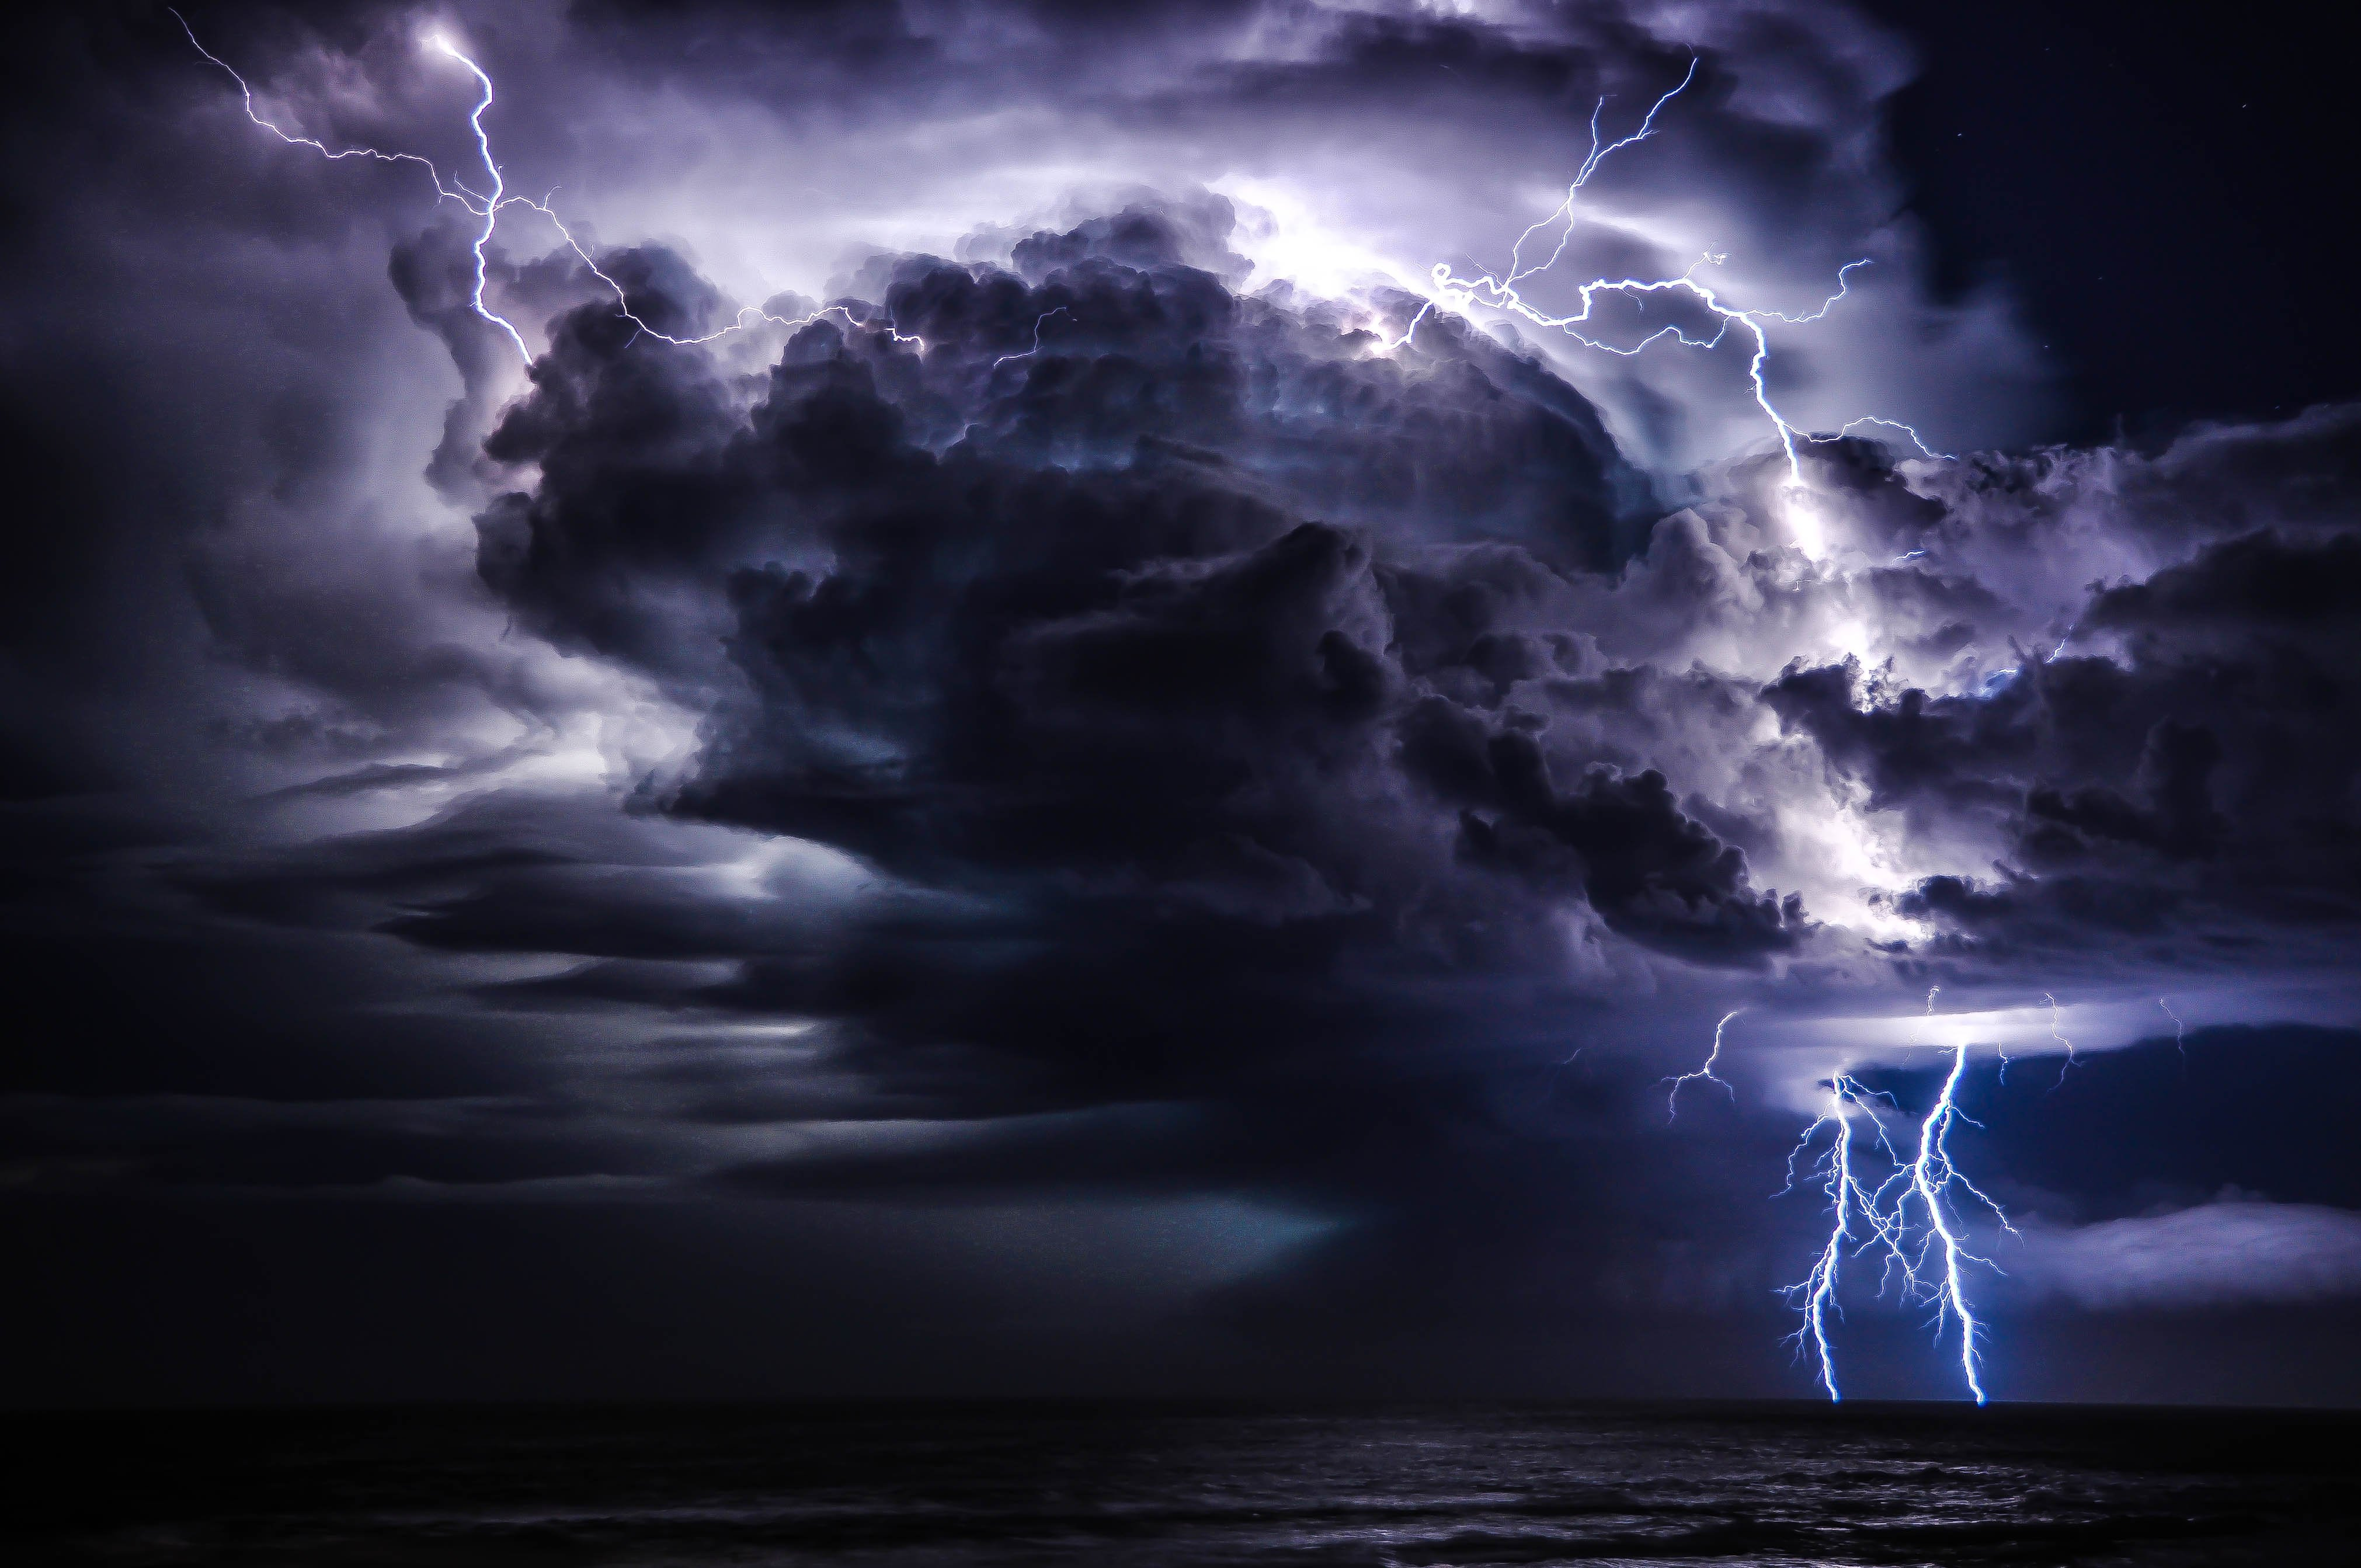 STORM weather rain sky clouds nature lightning wallpaper ...